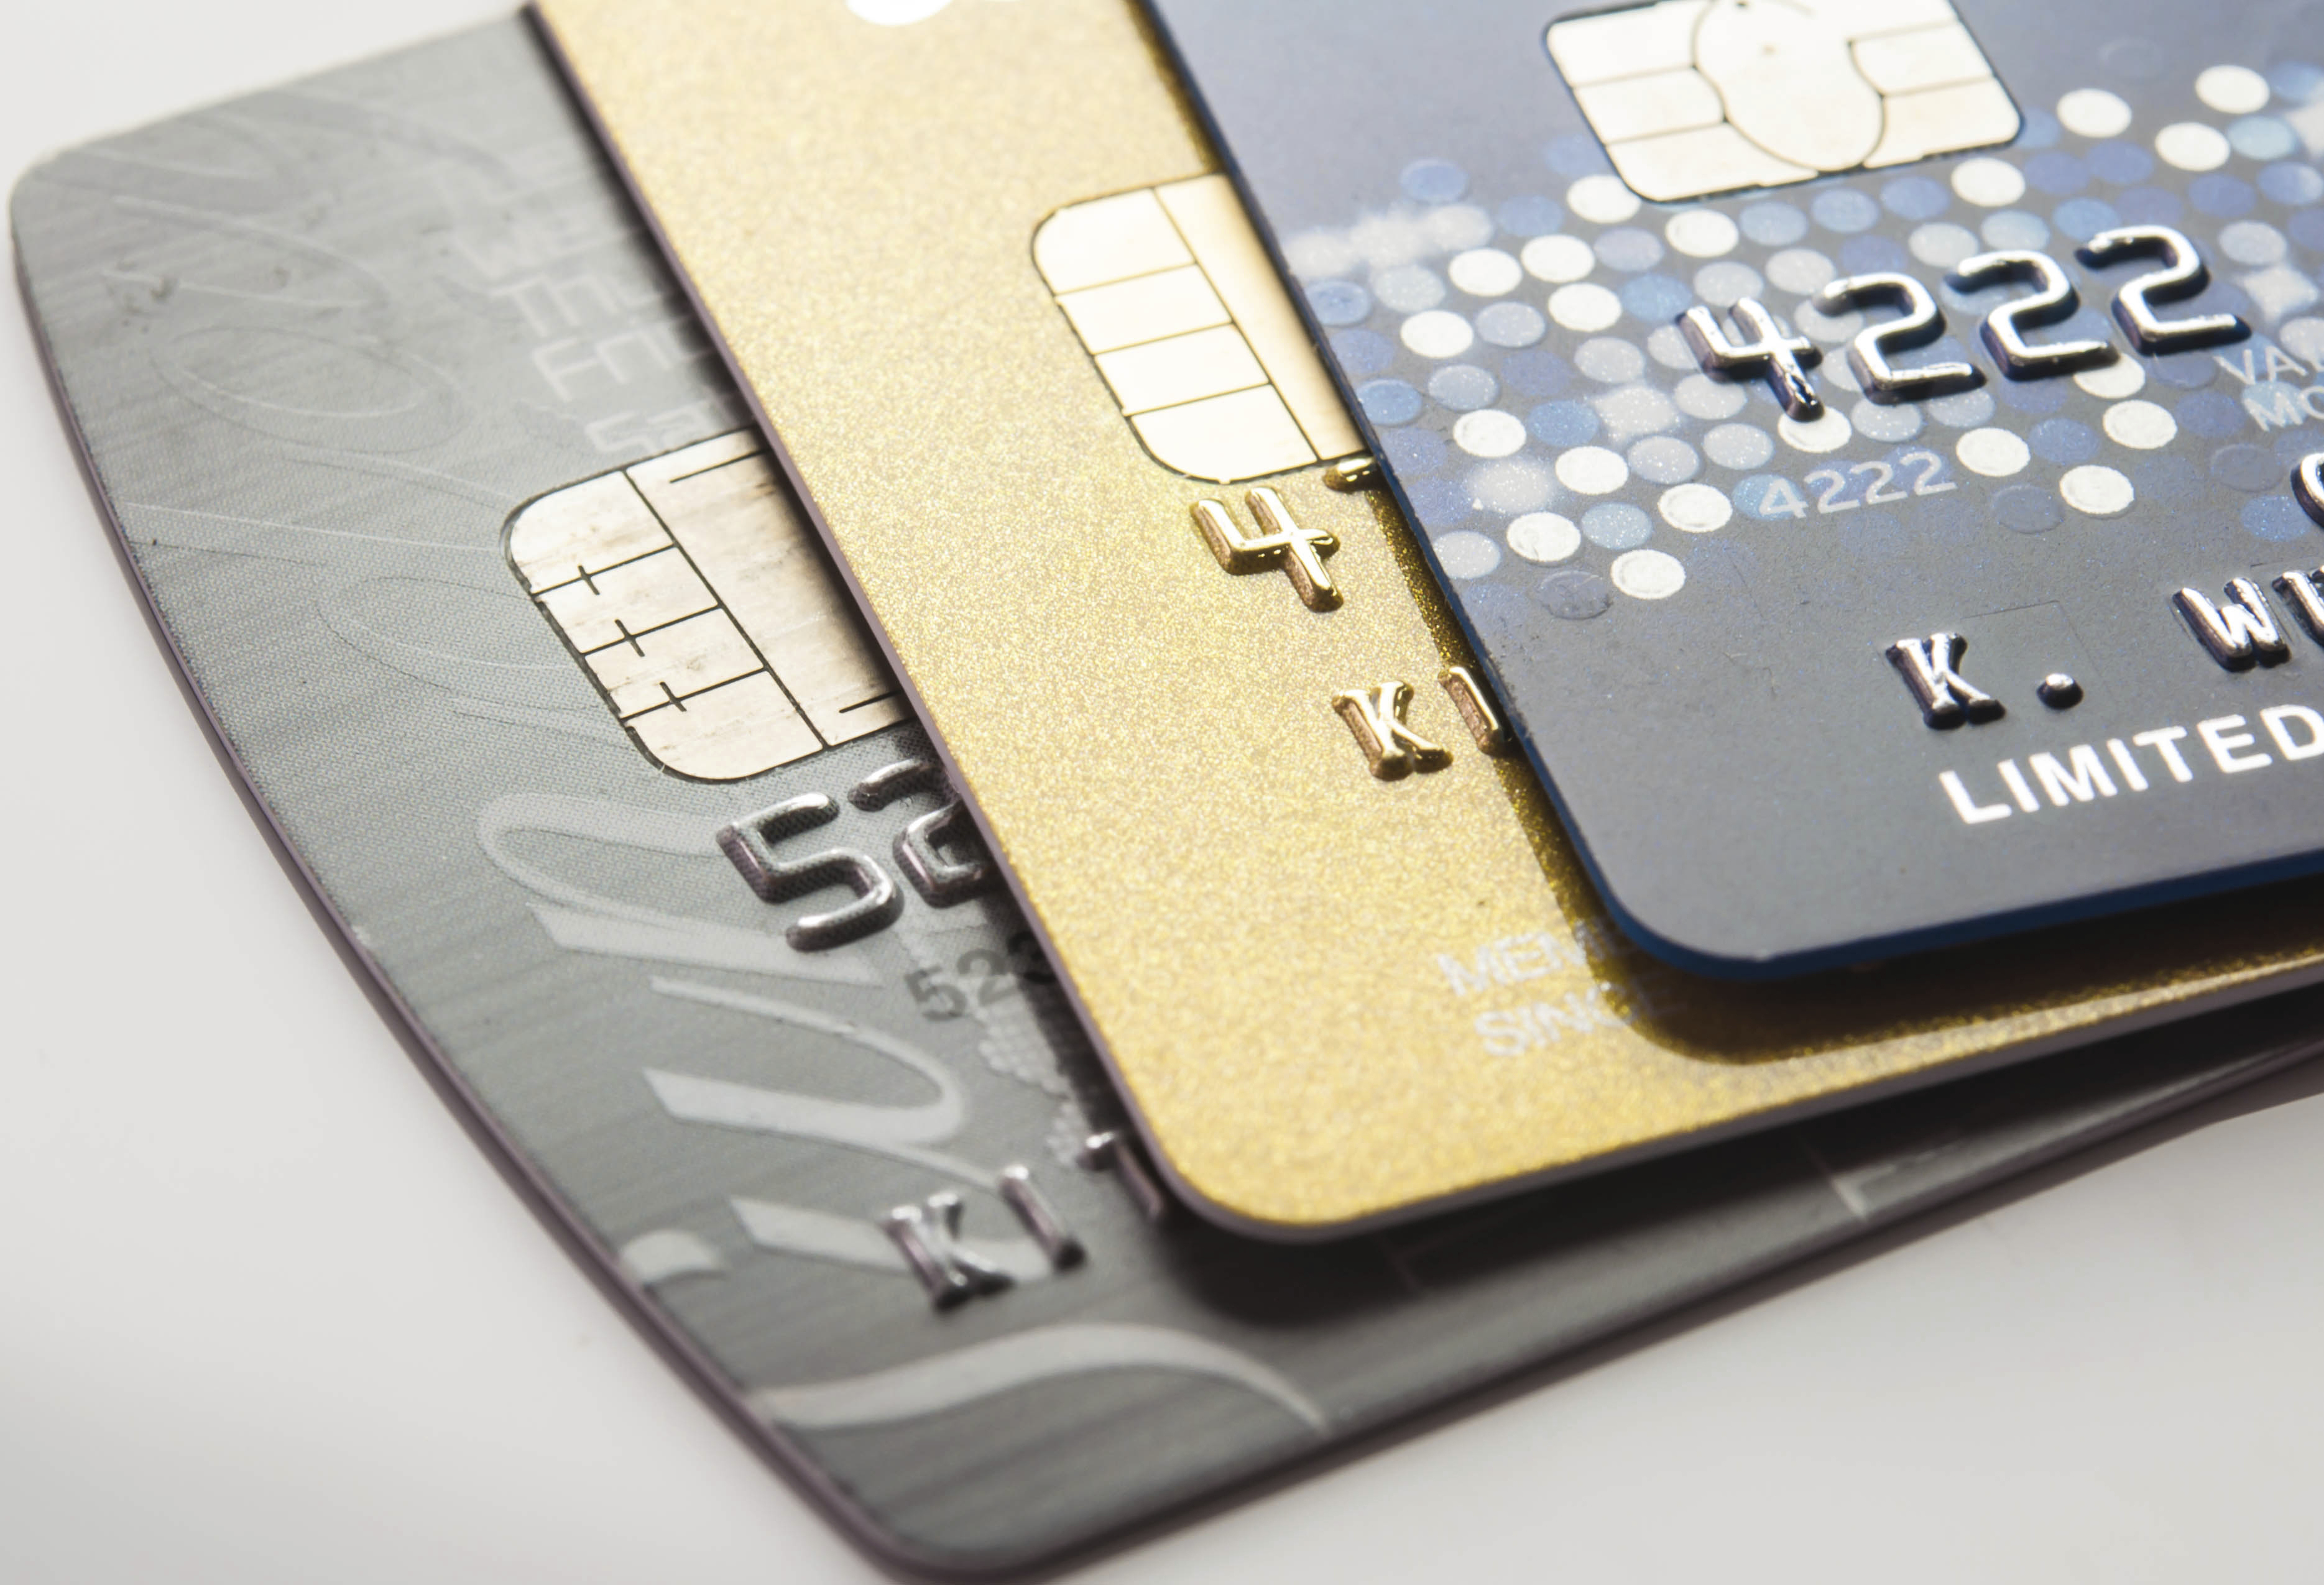 Can I Determine My Credit Card CVC Code by Looking at Statements